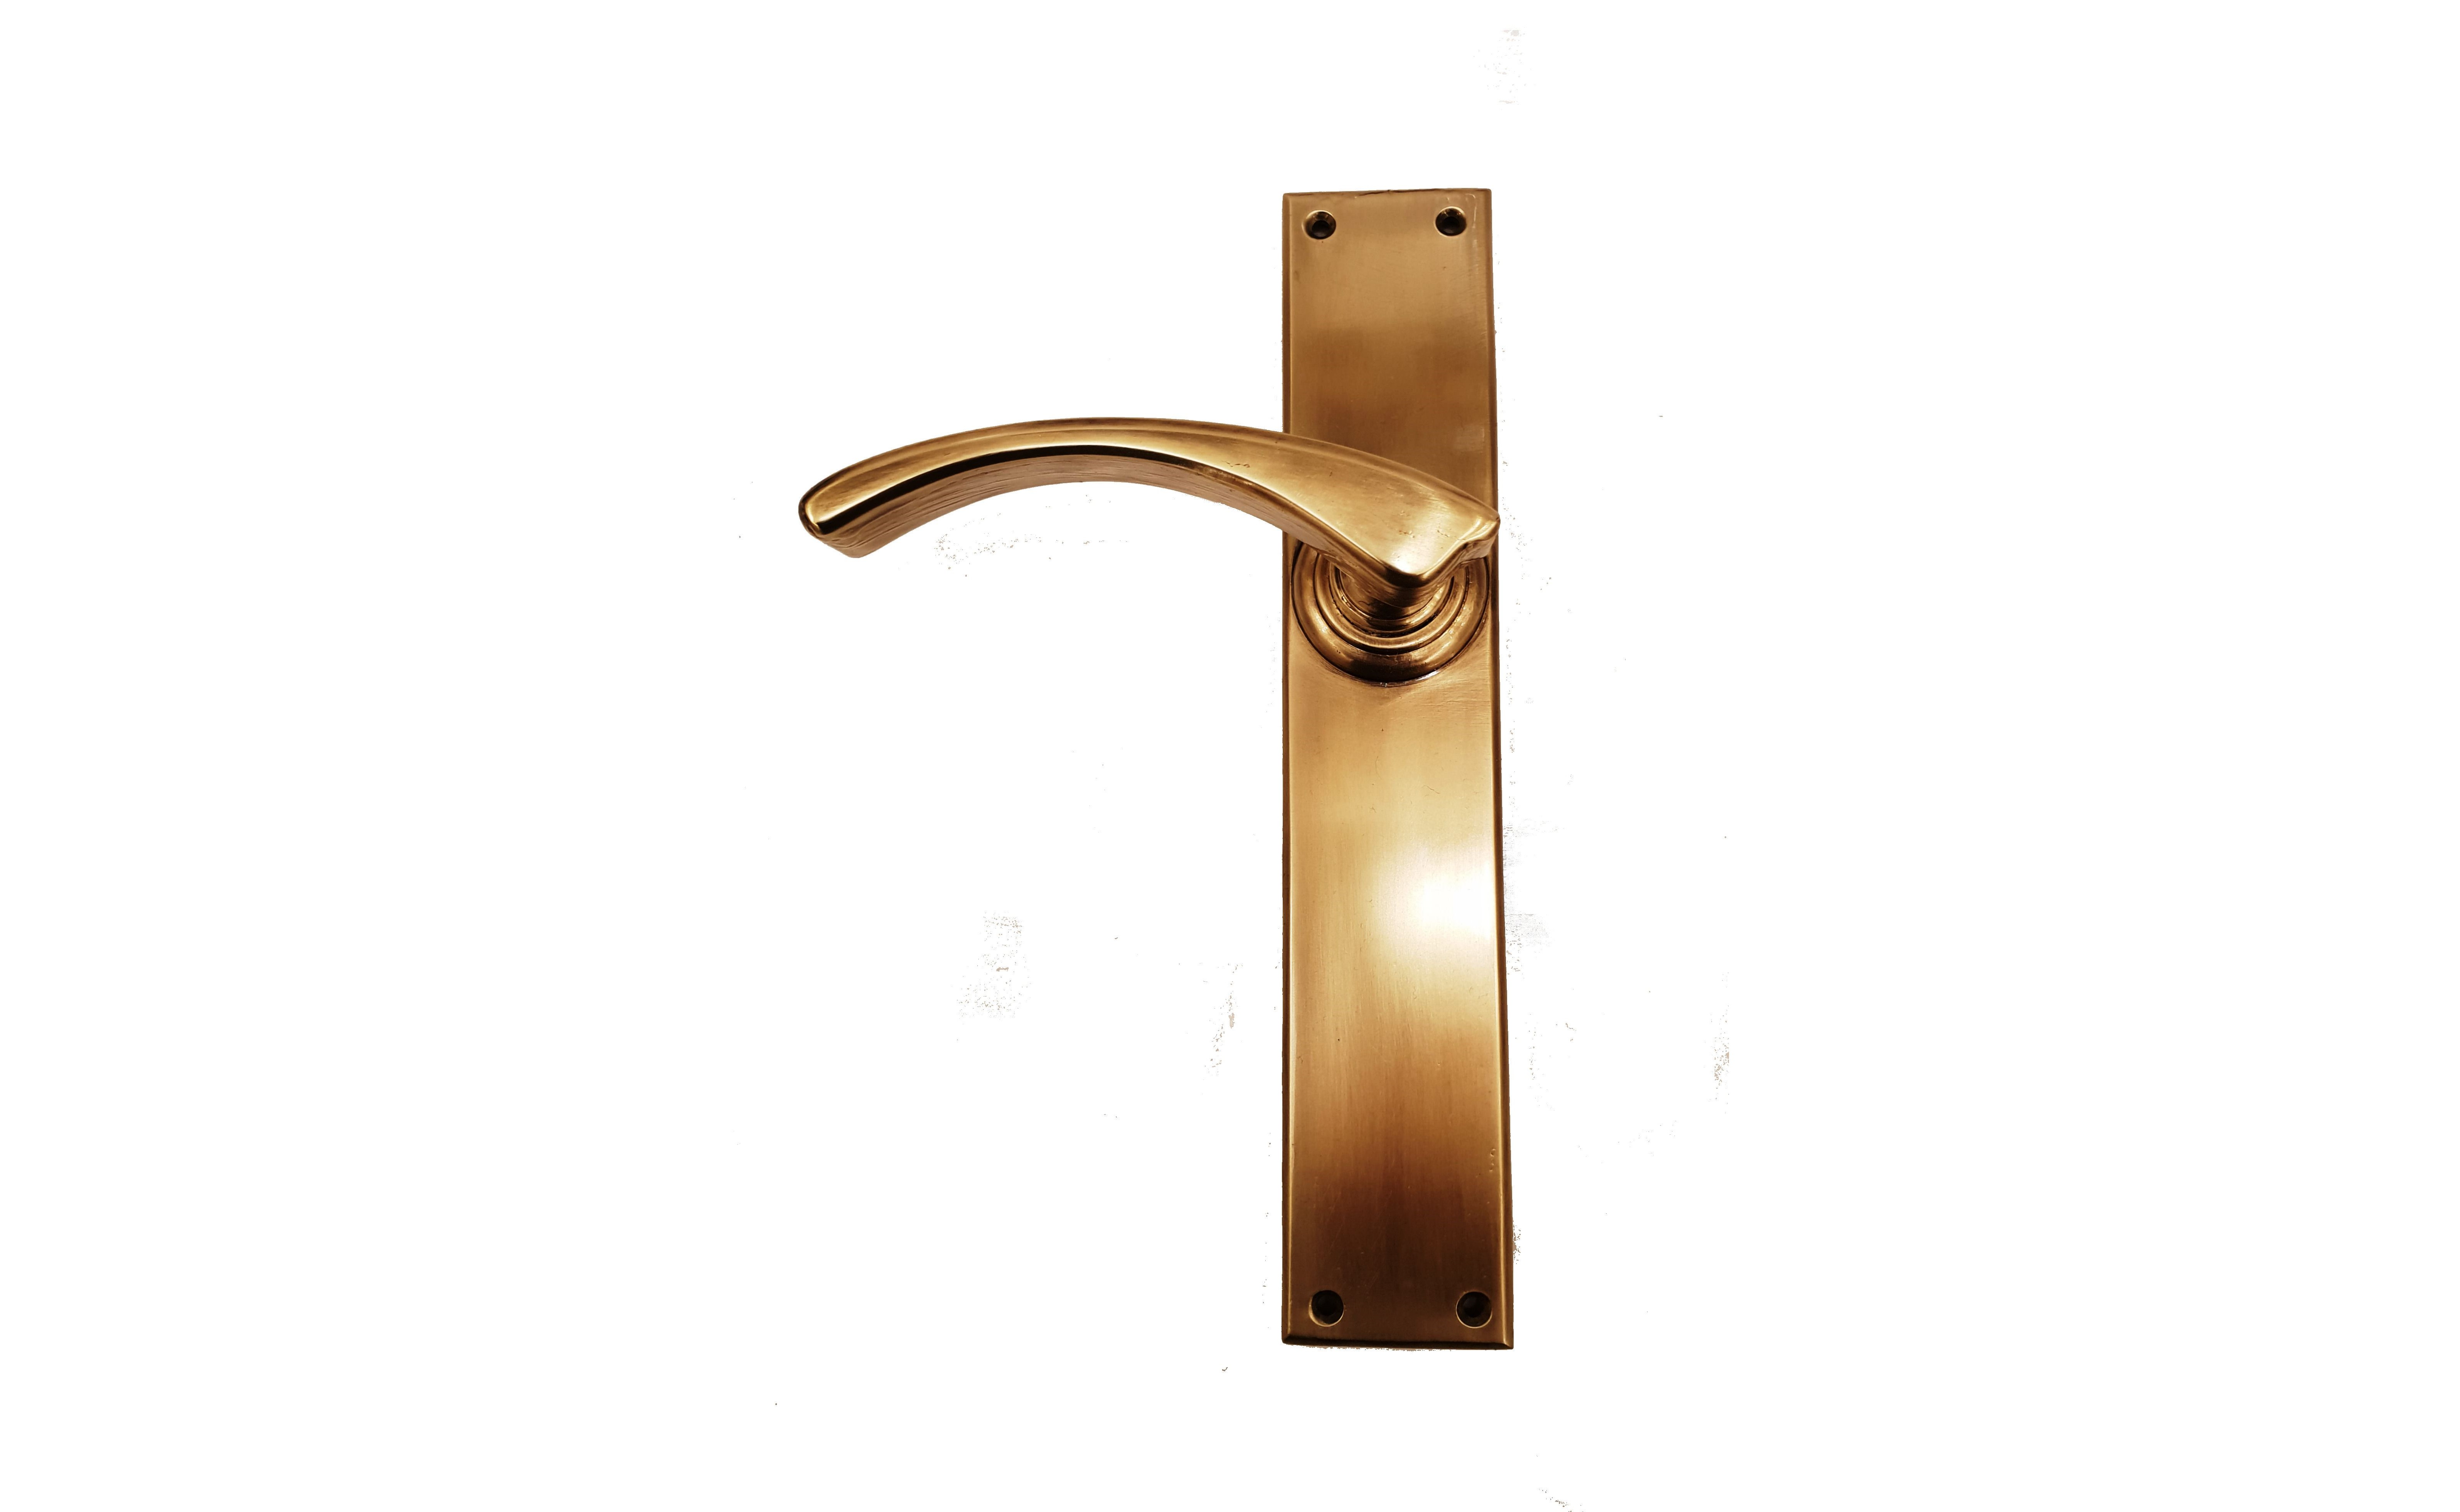 The Melbourne Handle In Antique Brass Finish Locks